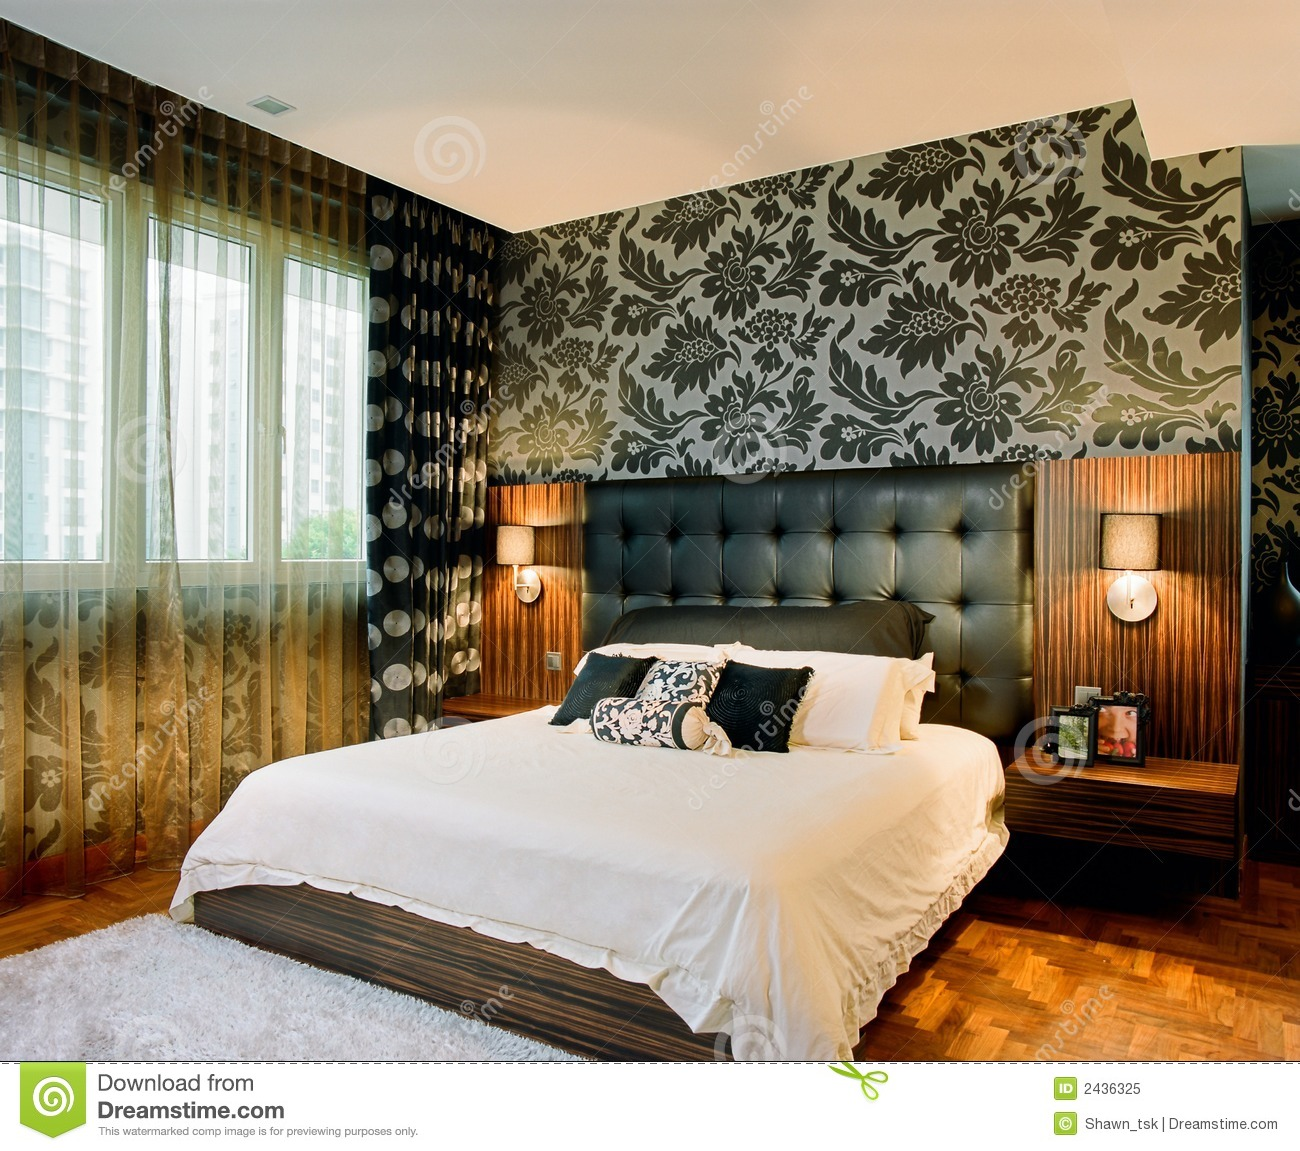 innenarchitektur schlafzimmer stockbild bild von t ren. Black Bedroom Furniture Sets. Home Design Ideas